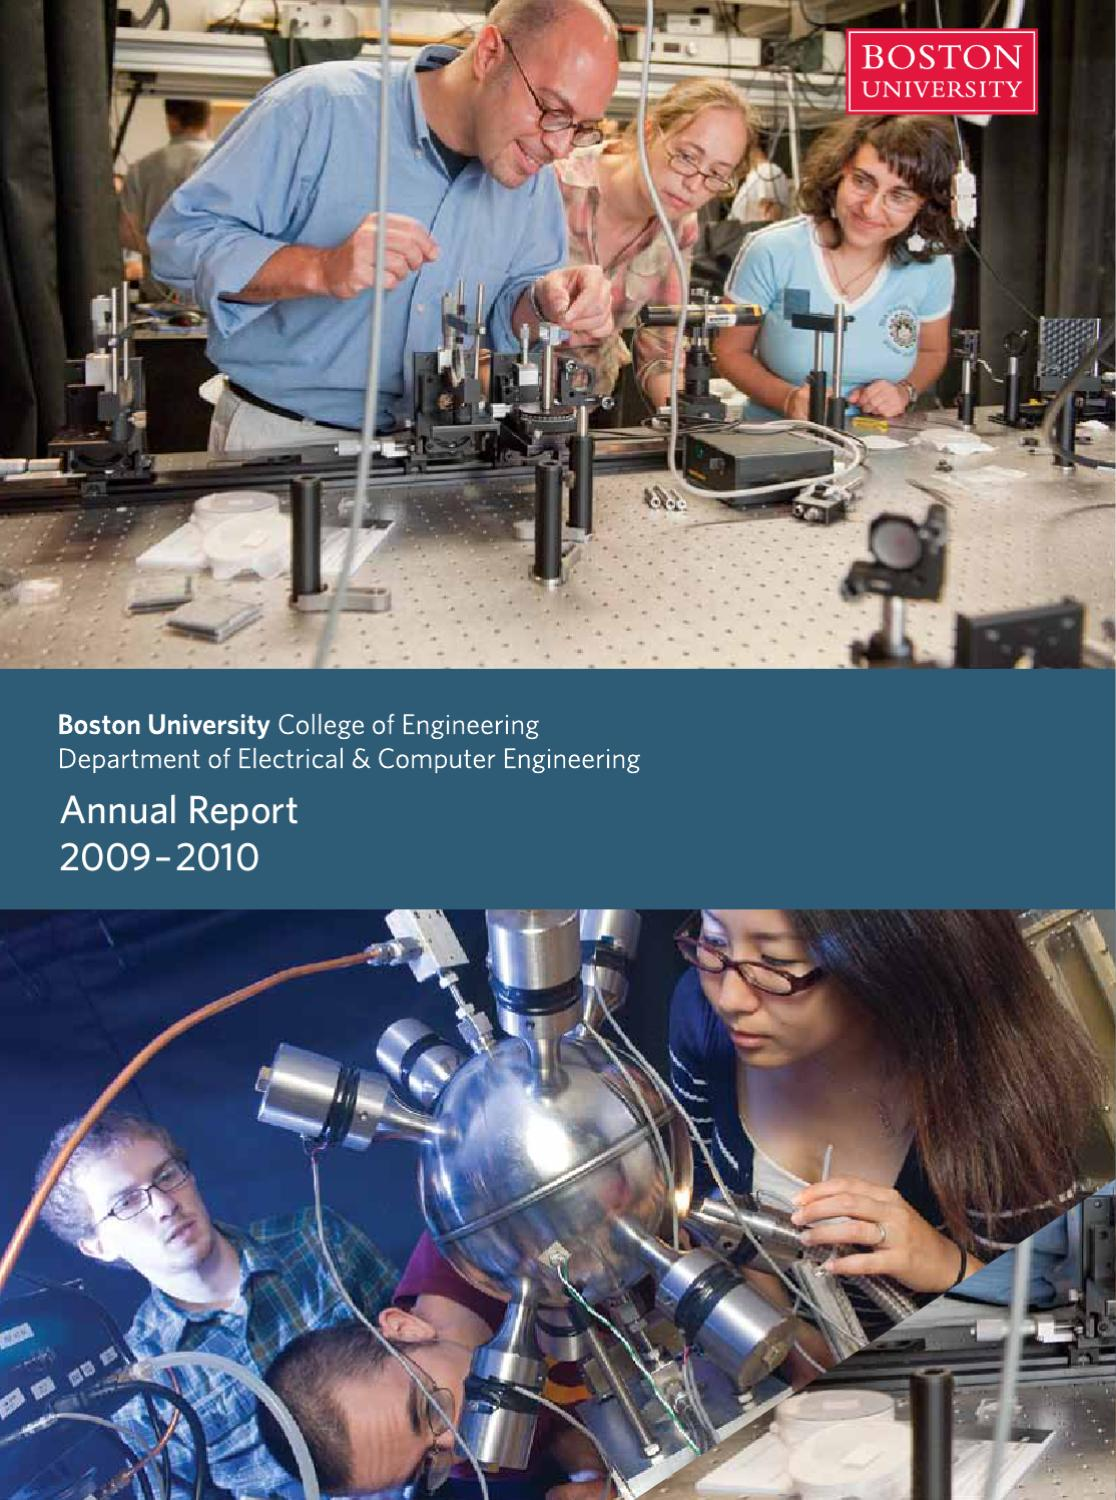 Bu Ece Annual Report 2009 10 By Department Issuu Homemade 100 Hp Motor Controller For An Electric Car Electronicslab